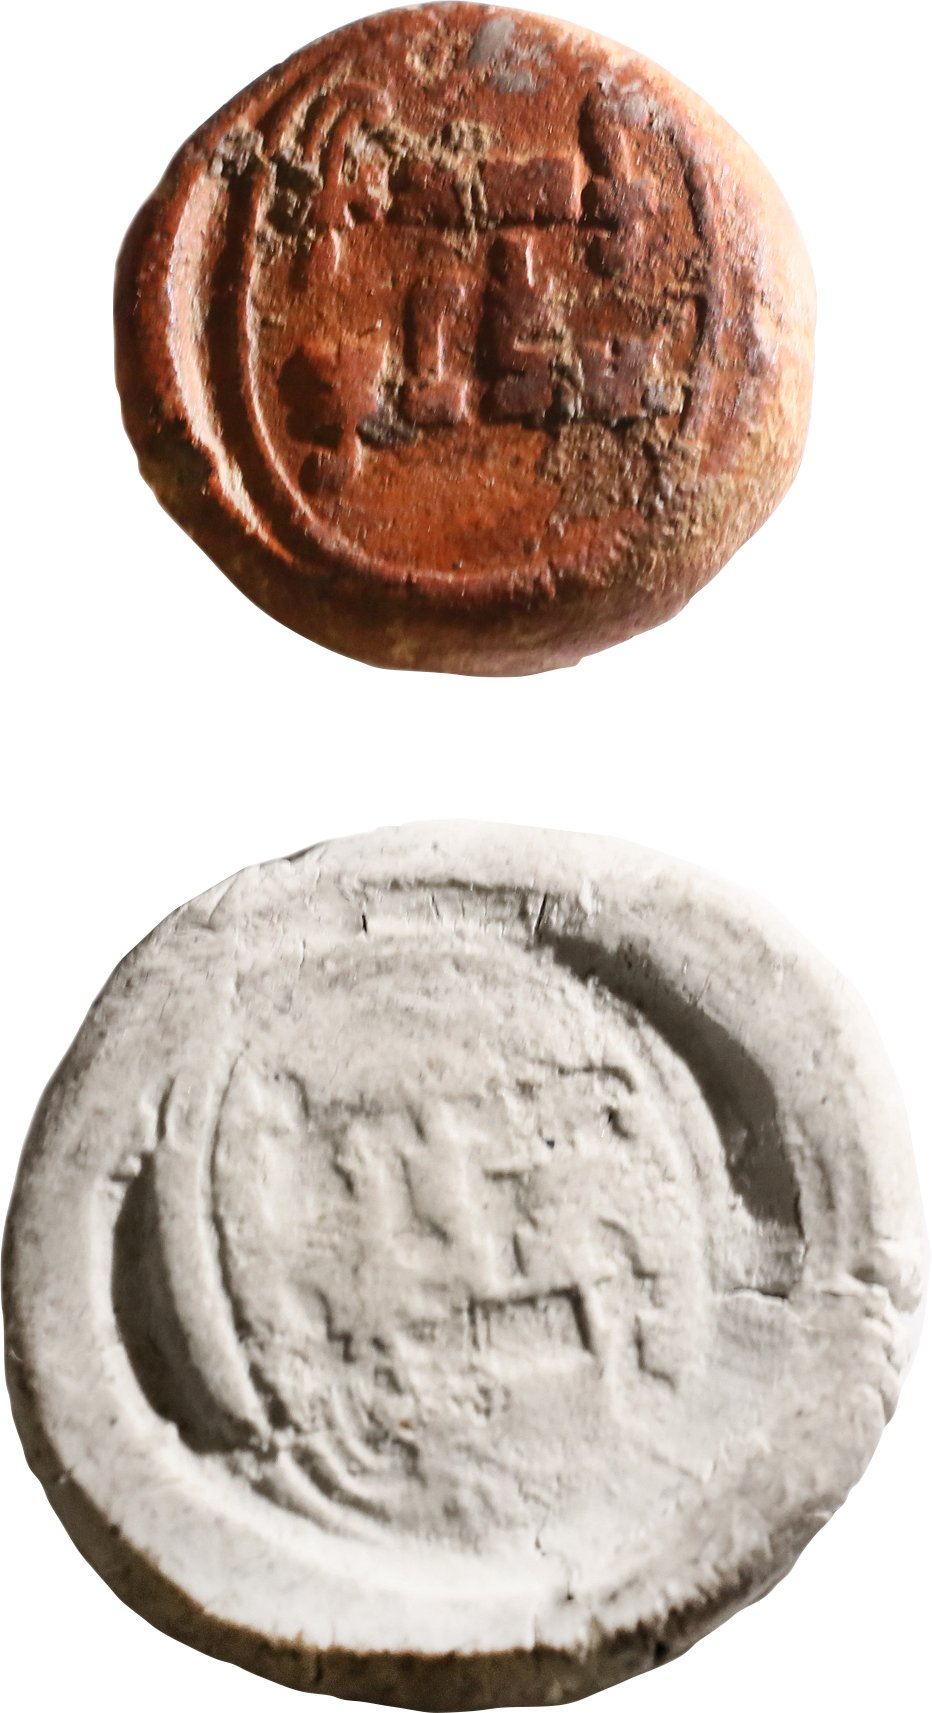 ROMAN THEATER TICKET OR TOKEN 2ND-3RD CENTURY AD - Fagan Arms